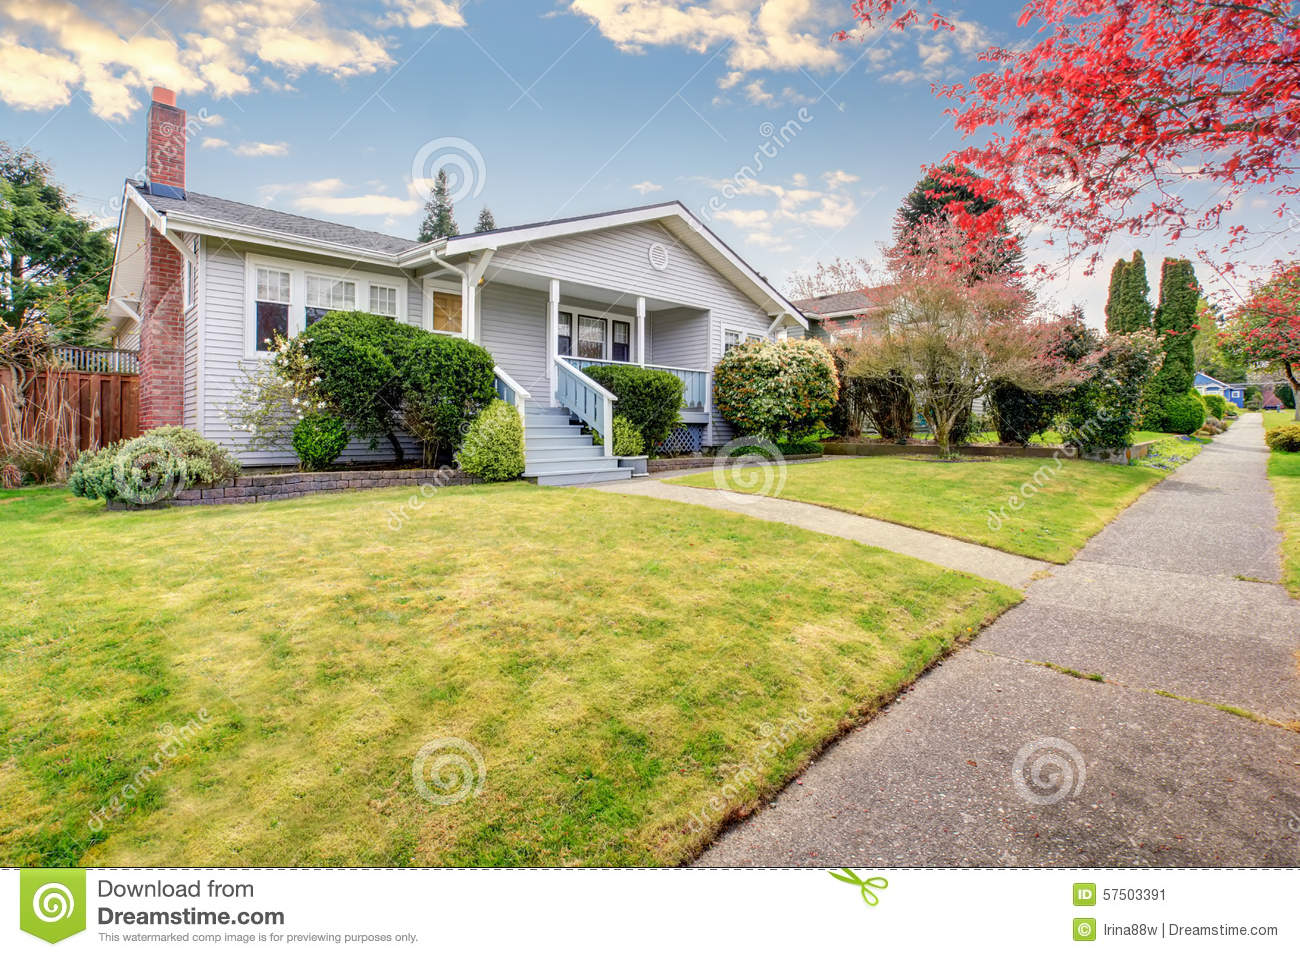 Small American Home With Light Exterior And A Large Grass